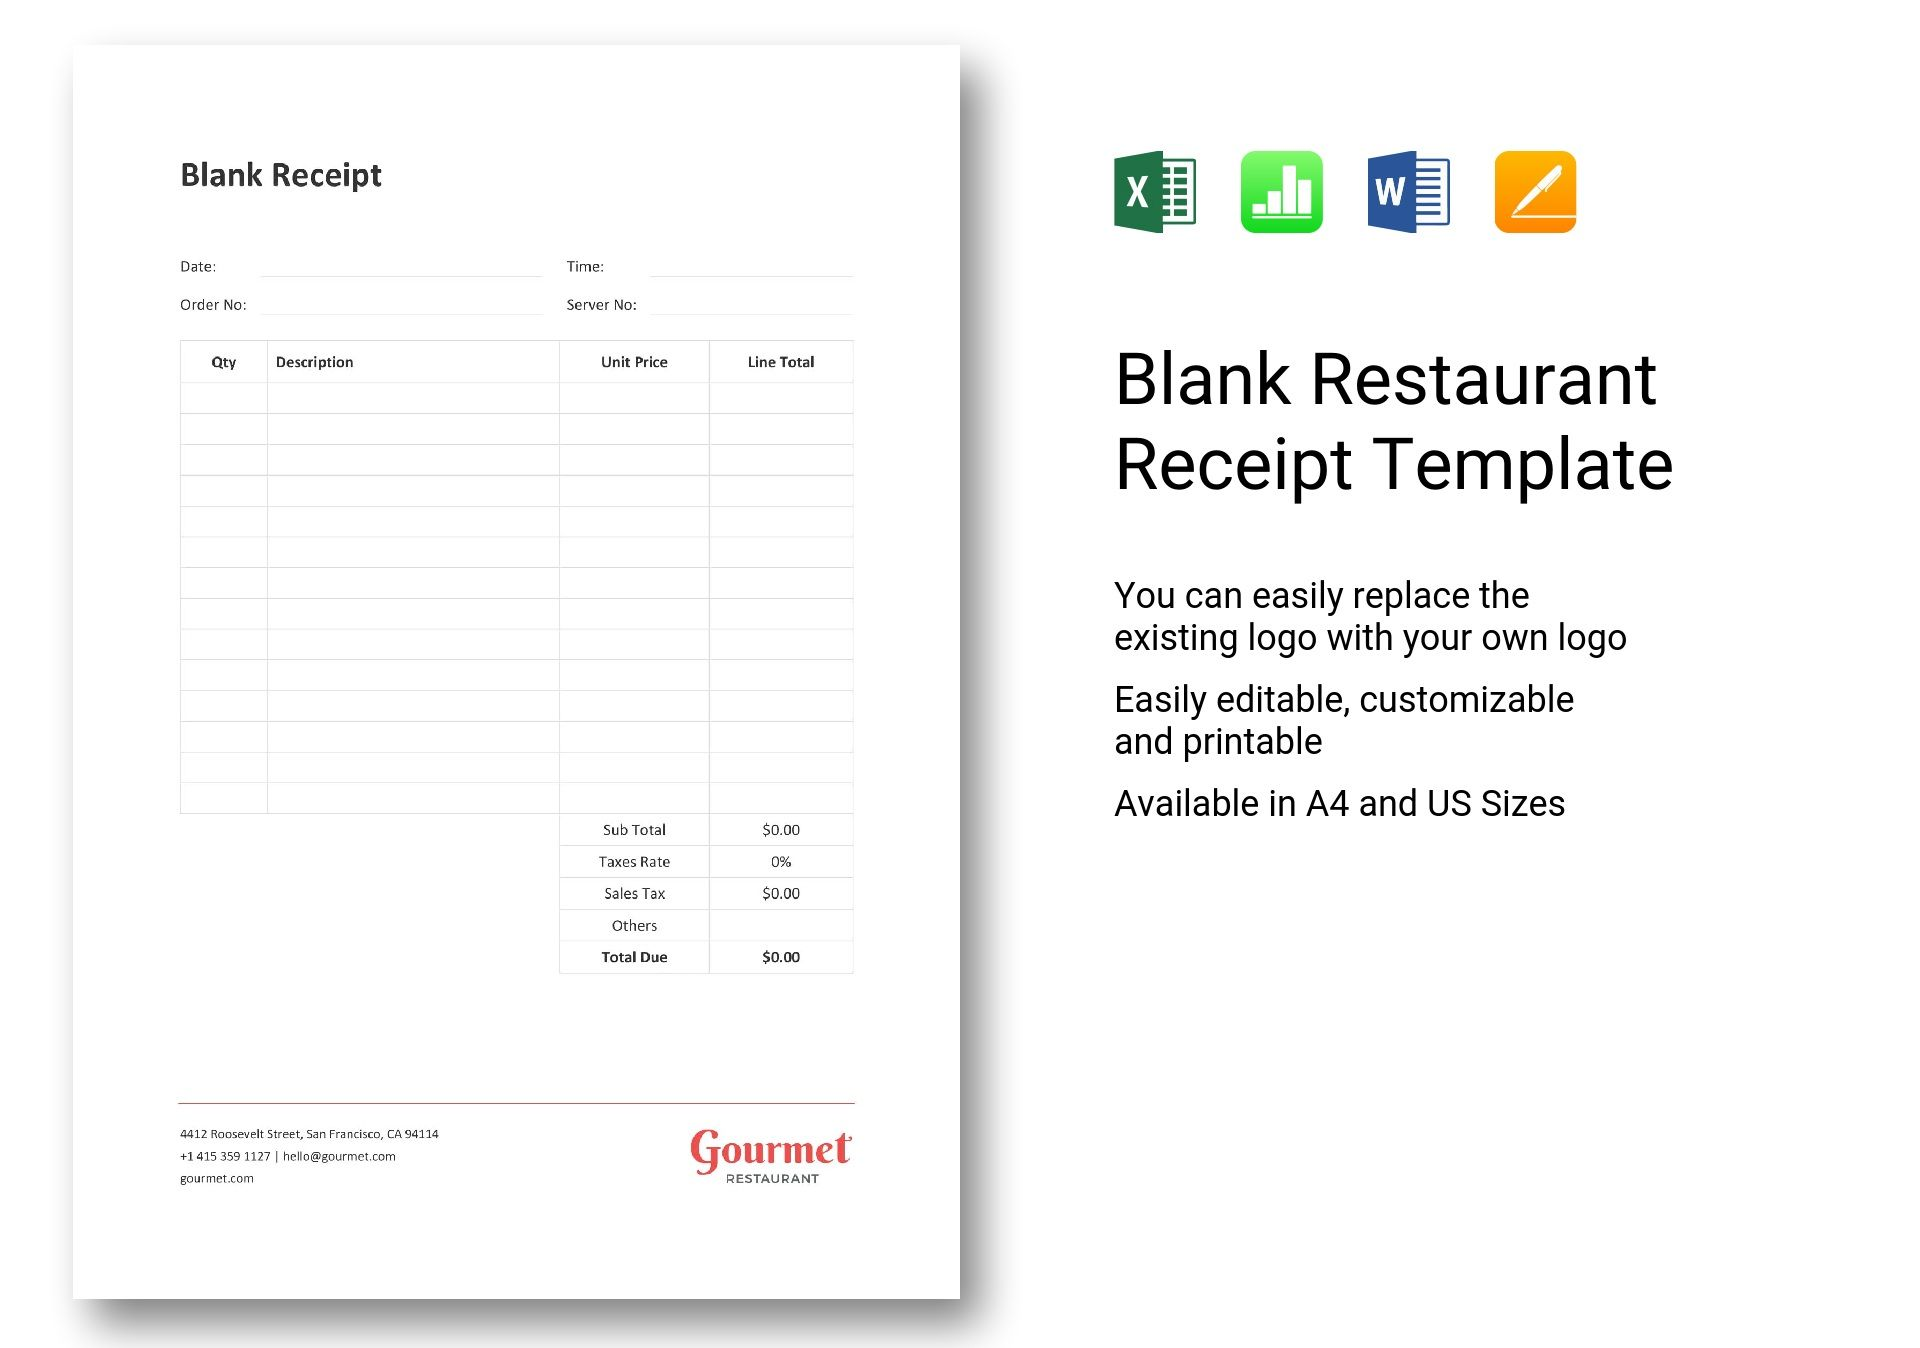 image regarding Blank Receipt Template called Blank Cafe Receipt Template within Term, Excel, Apple